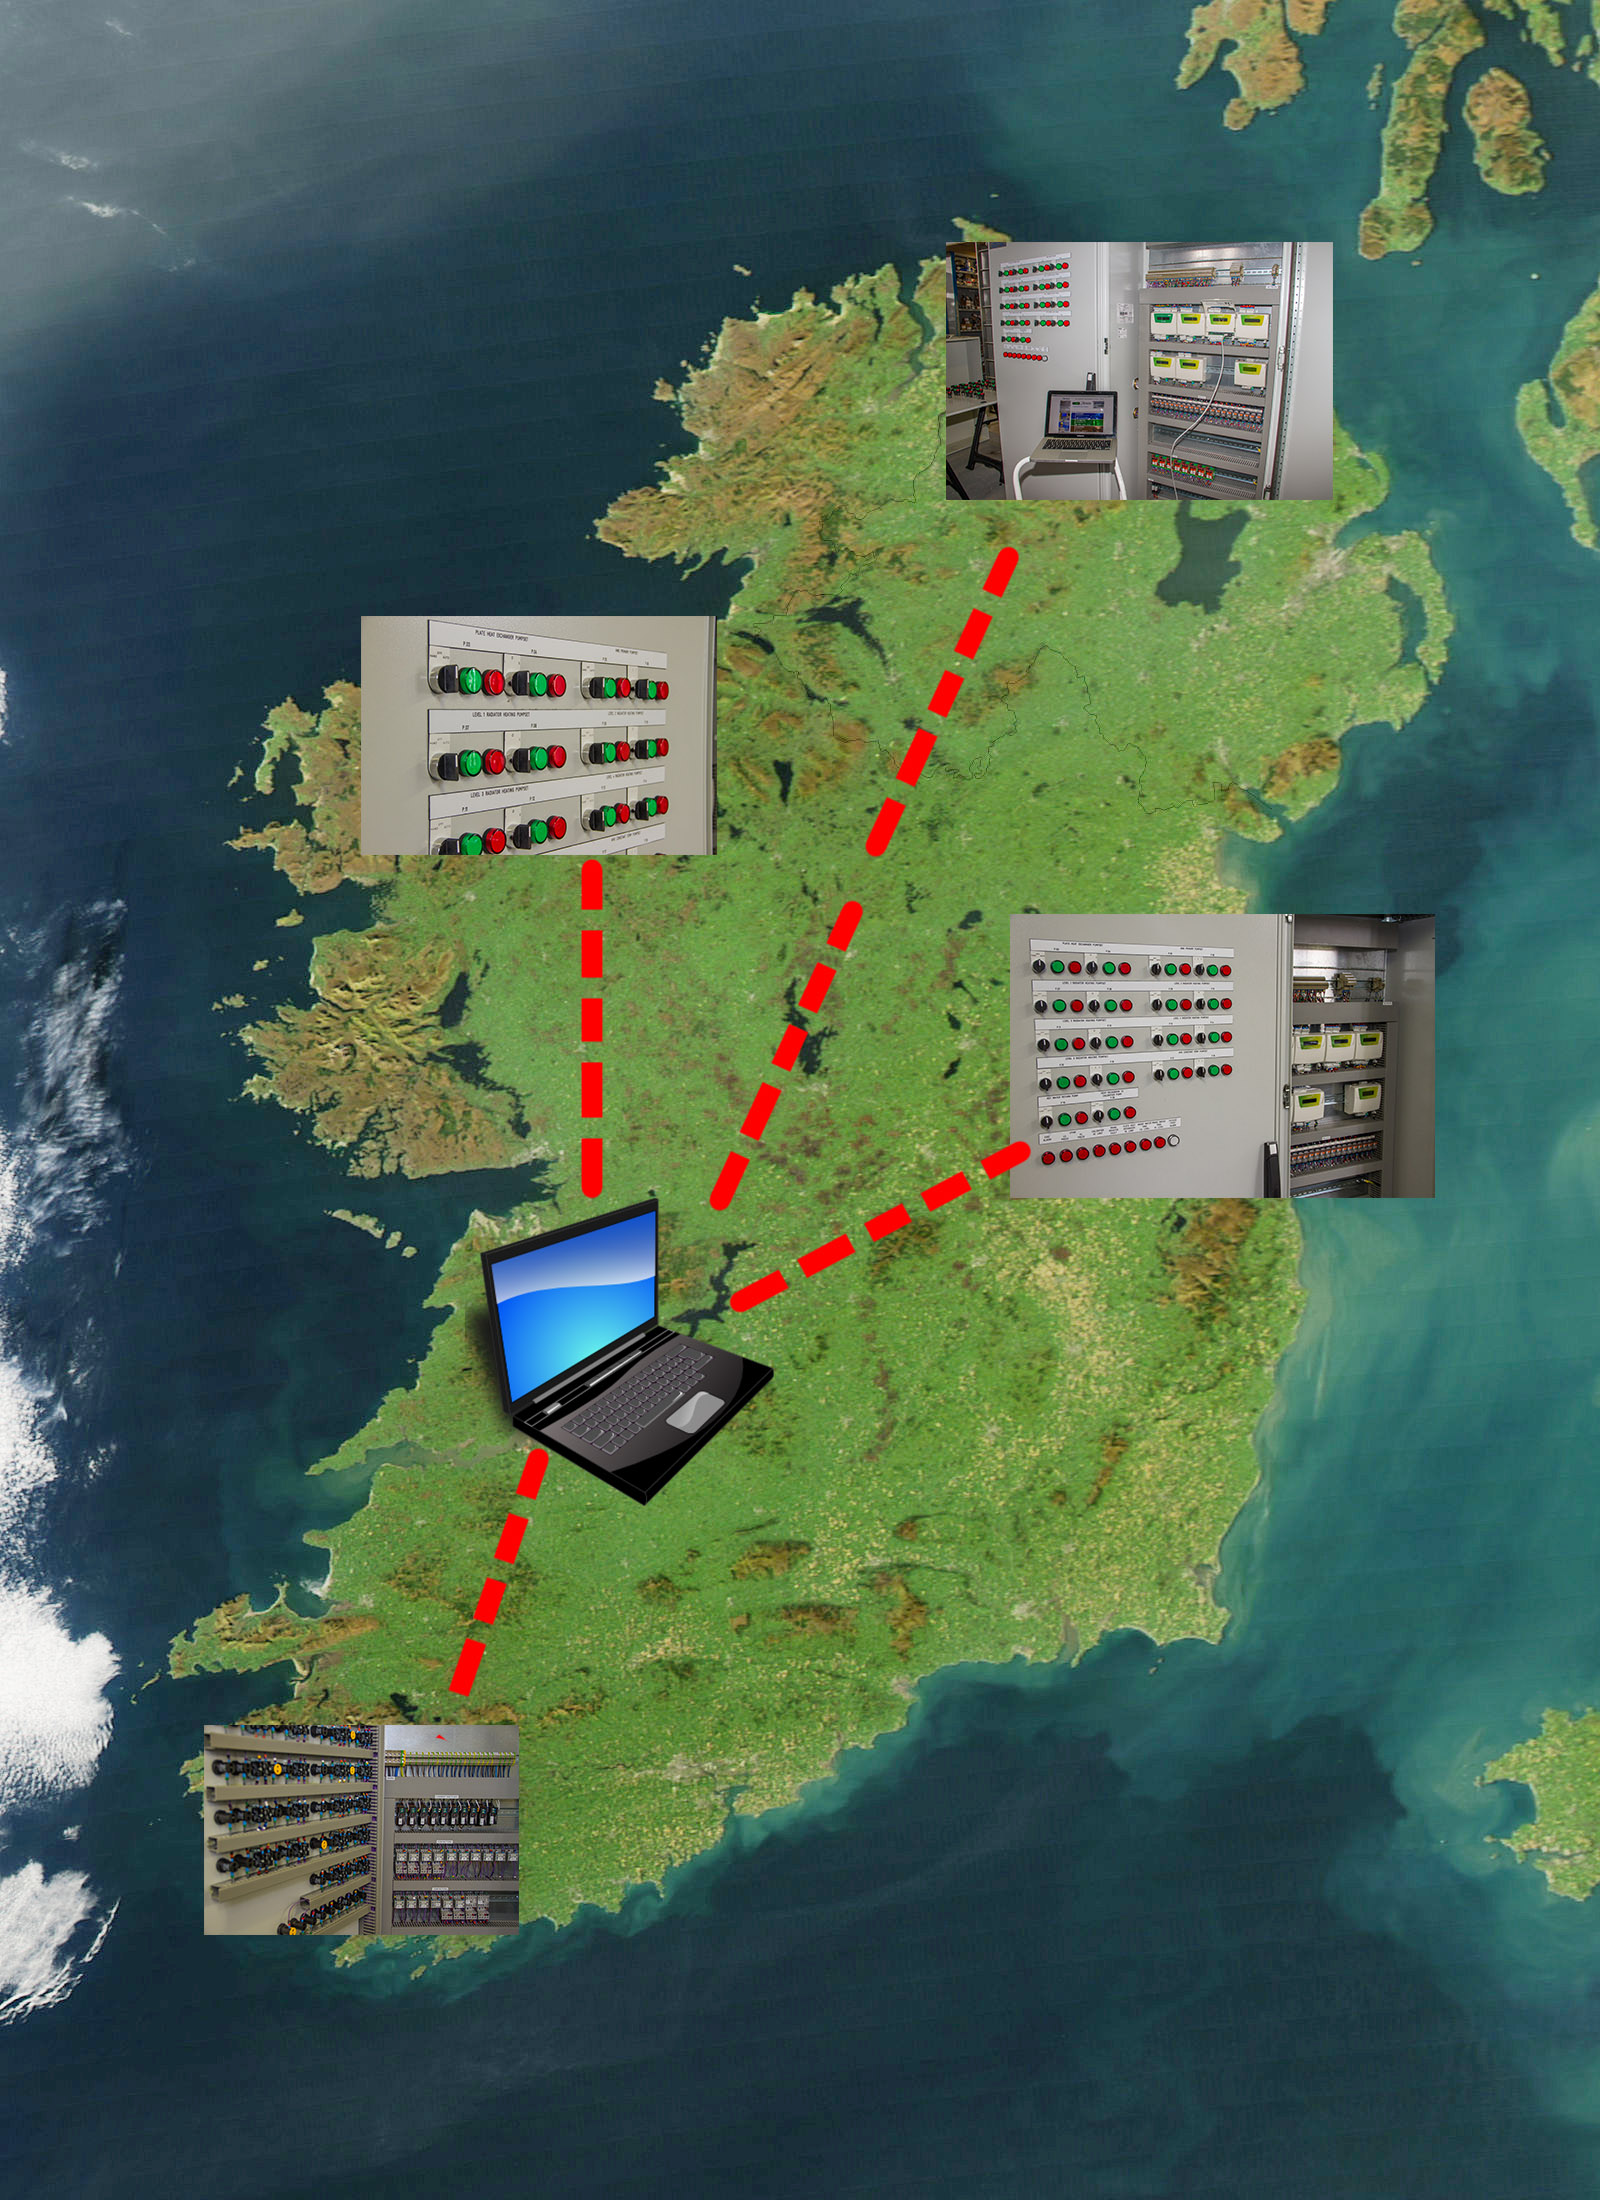 Remote Monitoring Map of Ireland